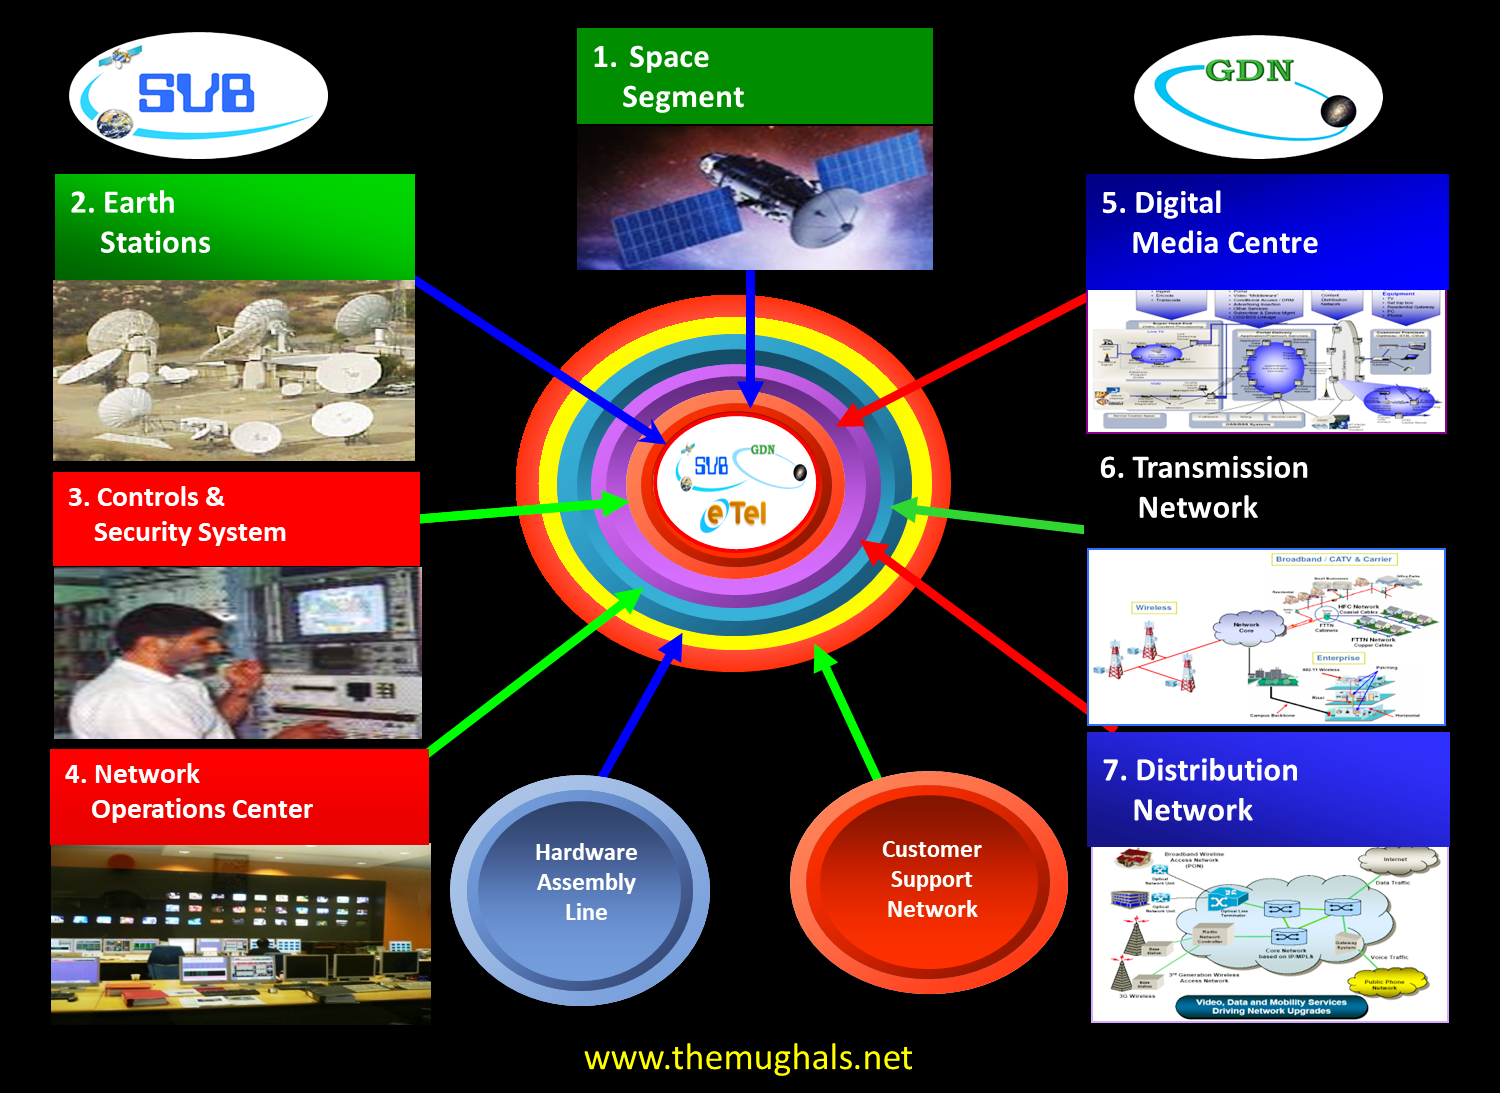 https://sites.google.com/a/themughals.net/www/initiatives-1/projects/MUGHALS_web_main_pak_teleport_design.png?attredirects=0